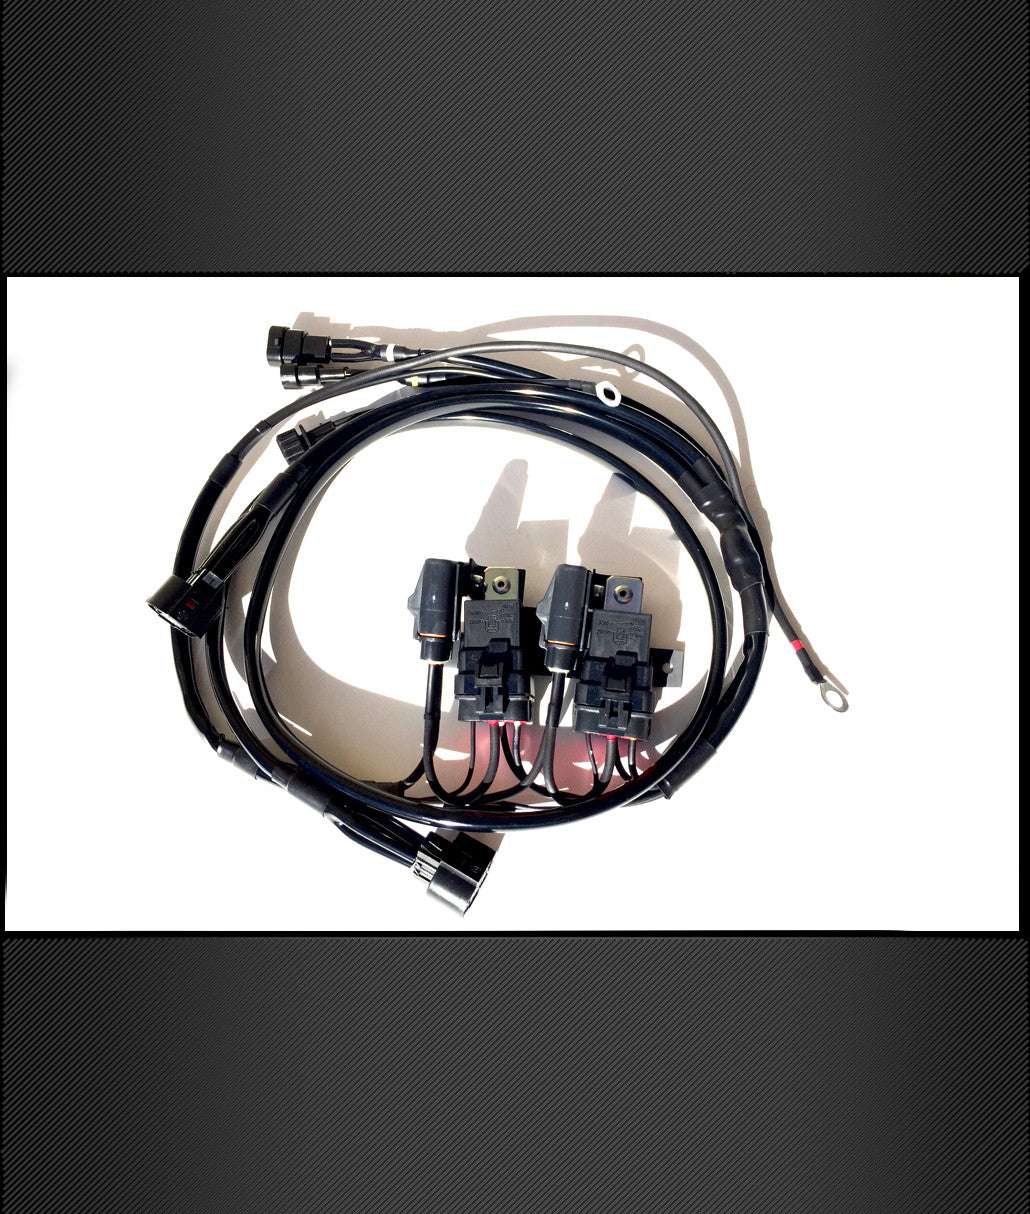 Mk3 Passat B4 E Code Headlight Relay Harness Spoonfedtuning Switch Kit